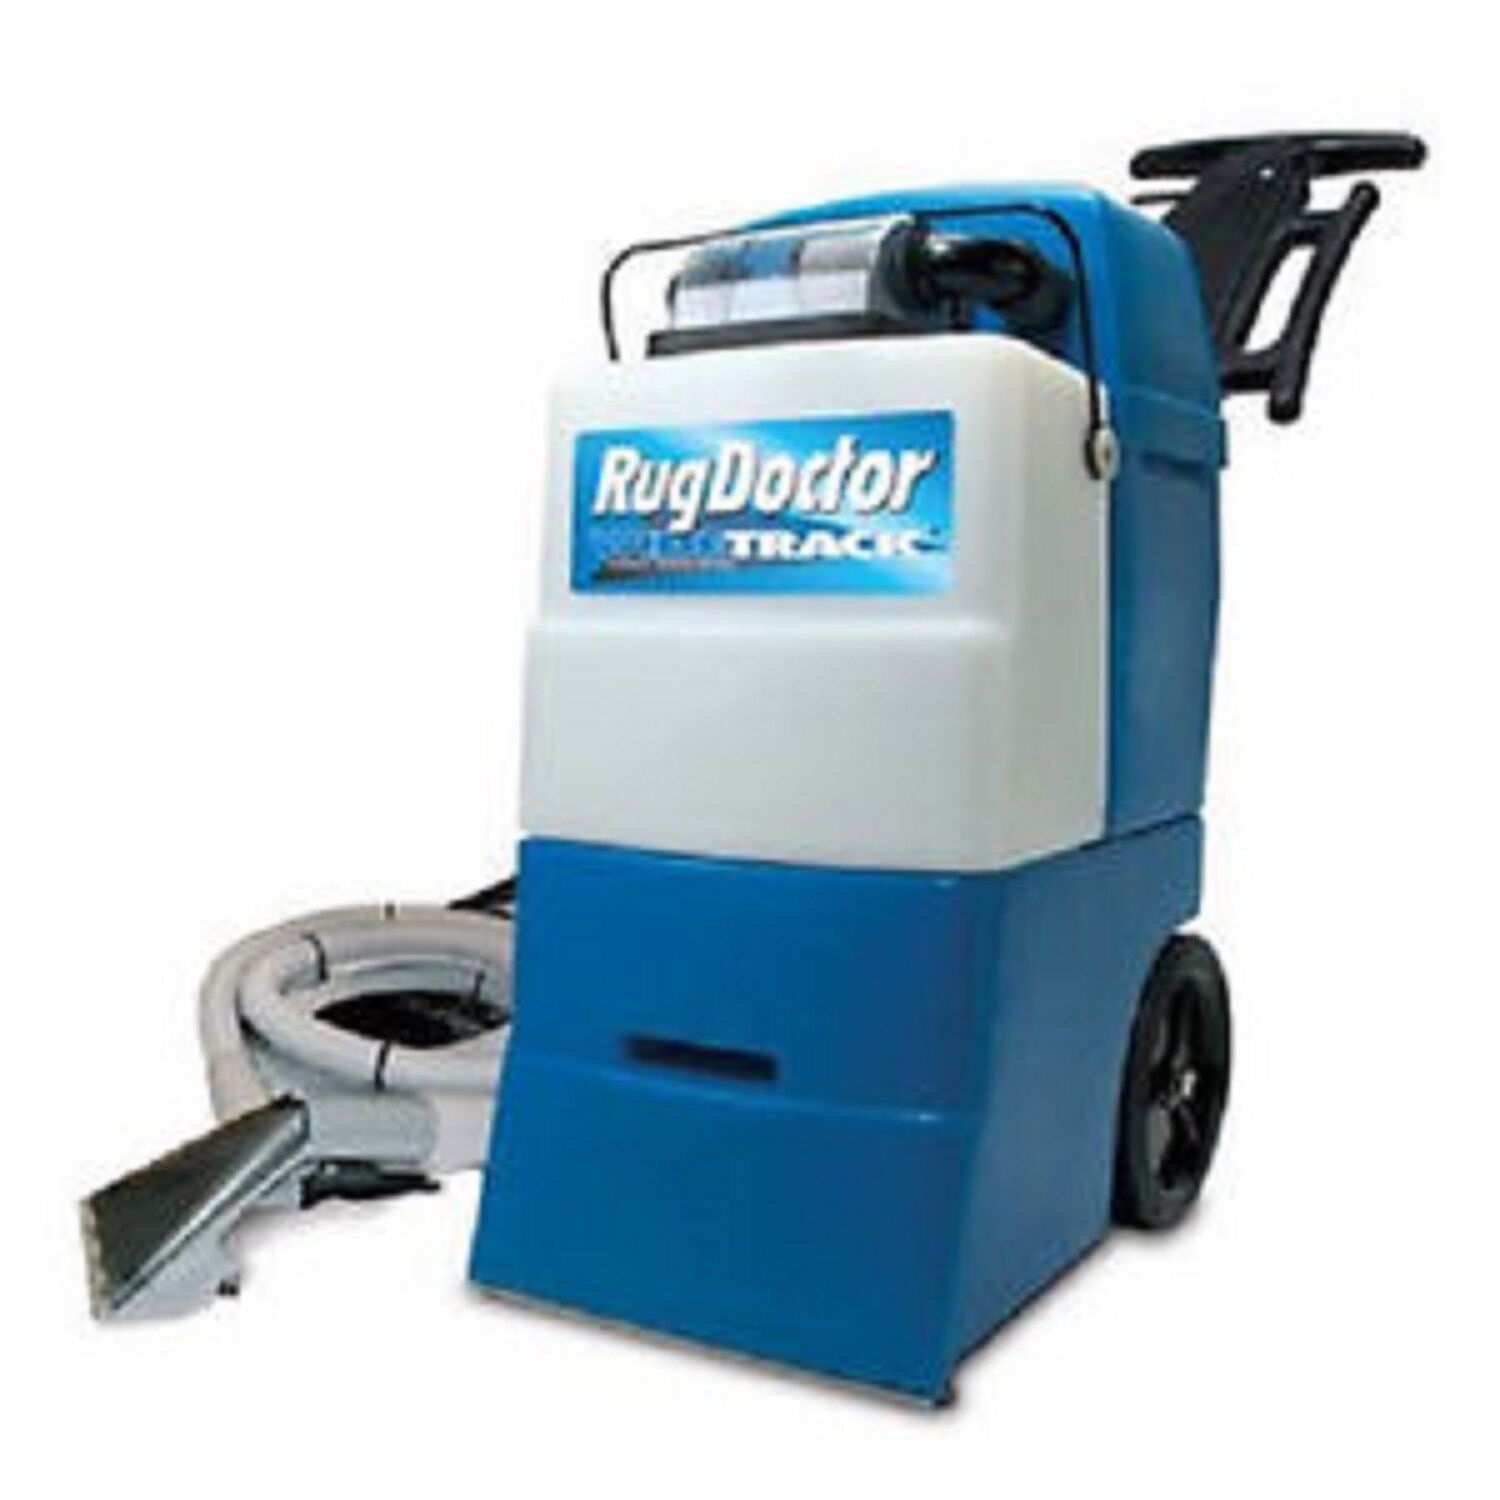 NEW Rug Doctor Wide Track Professional Carpet Cleaner PRO -